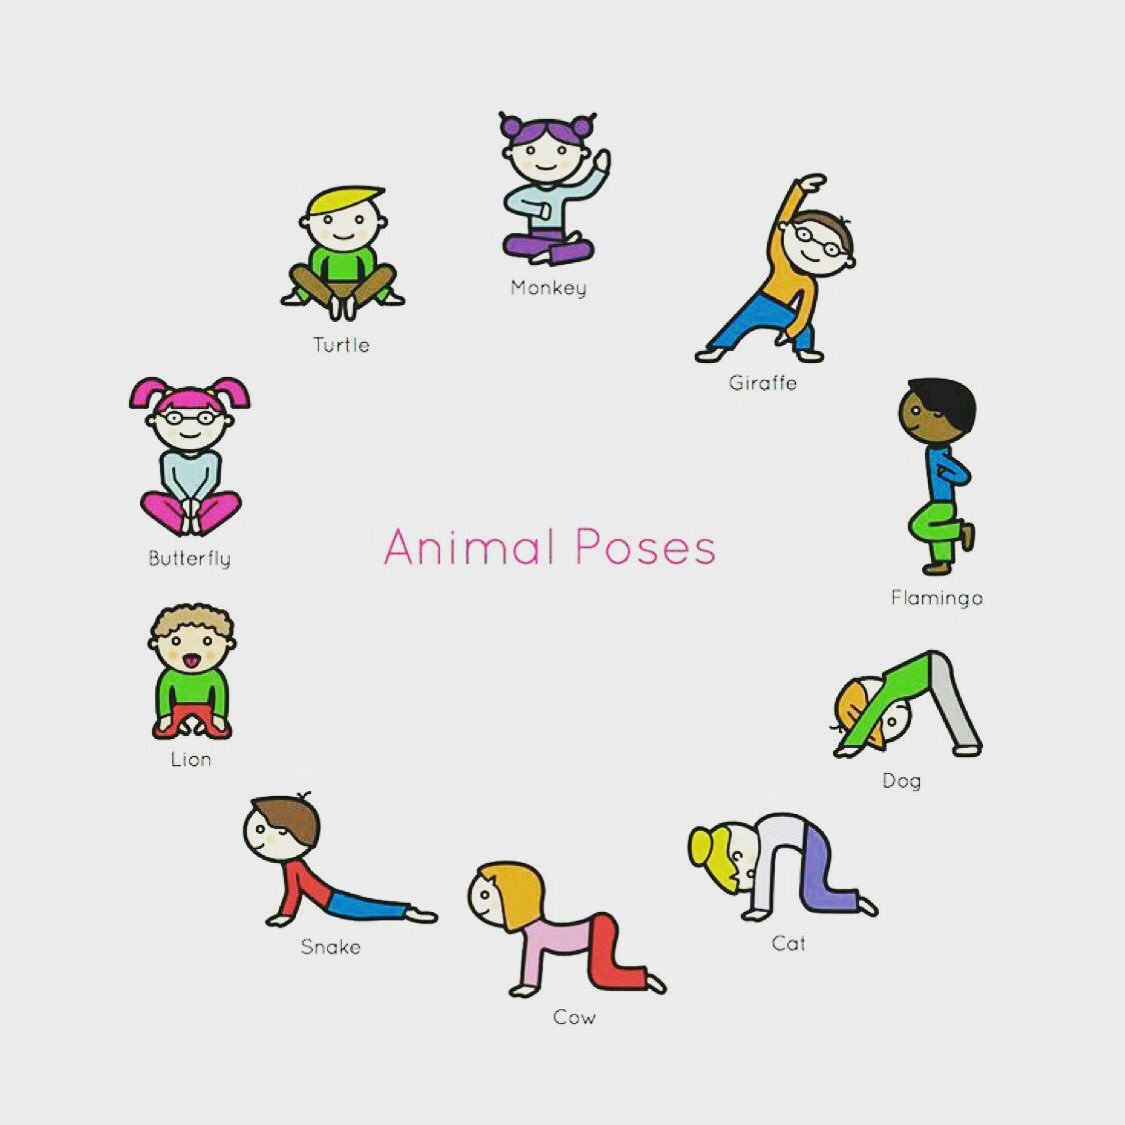 Kids love to practice Animal Poses and we love teaching them. Kids Yoga is more than physical activity, it is an opportunity for children to be creative while connecting to the beautiful creatures they embody #upwardkidsyoga #onwardandupward #kidsyoga #animalposes pic.twitter.com/zGNp0aEu4a